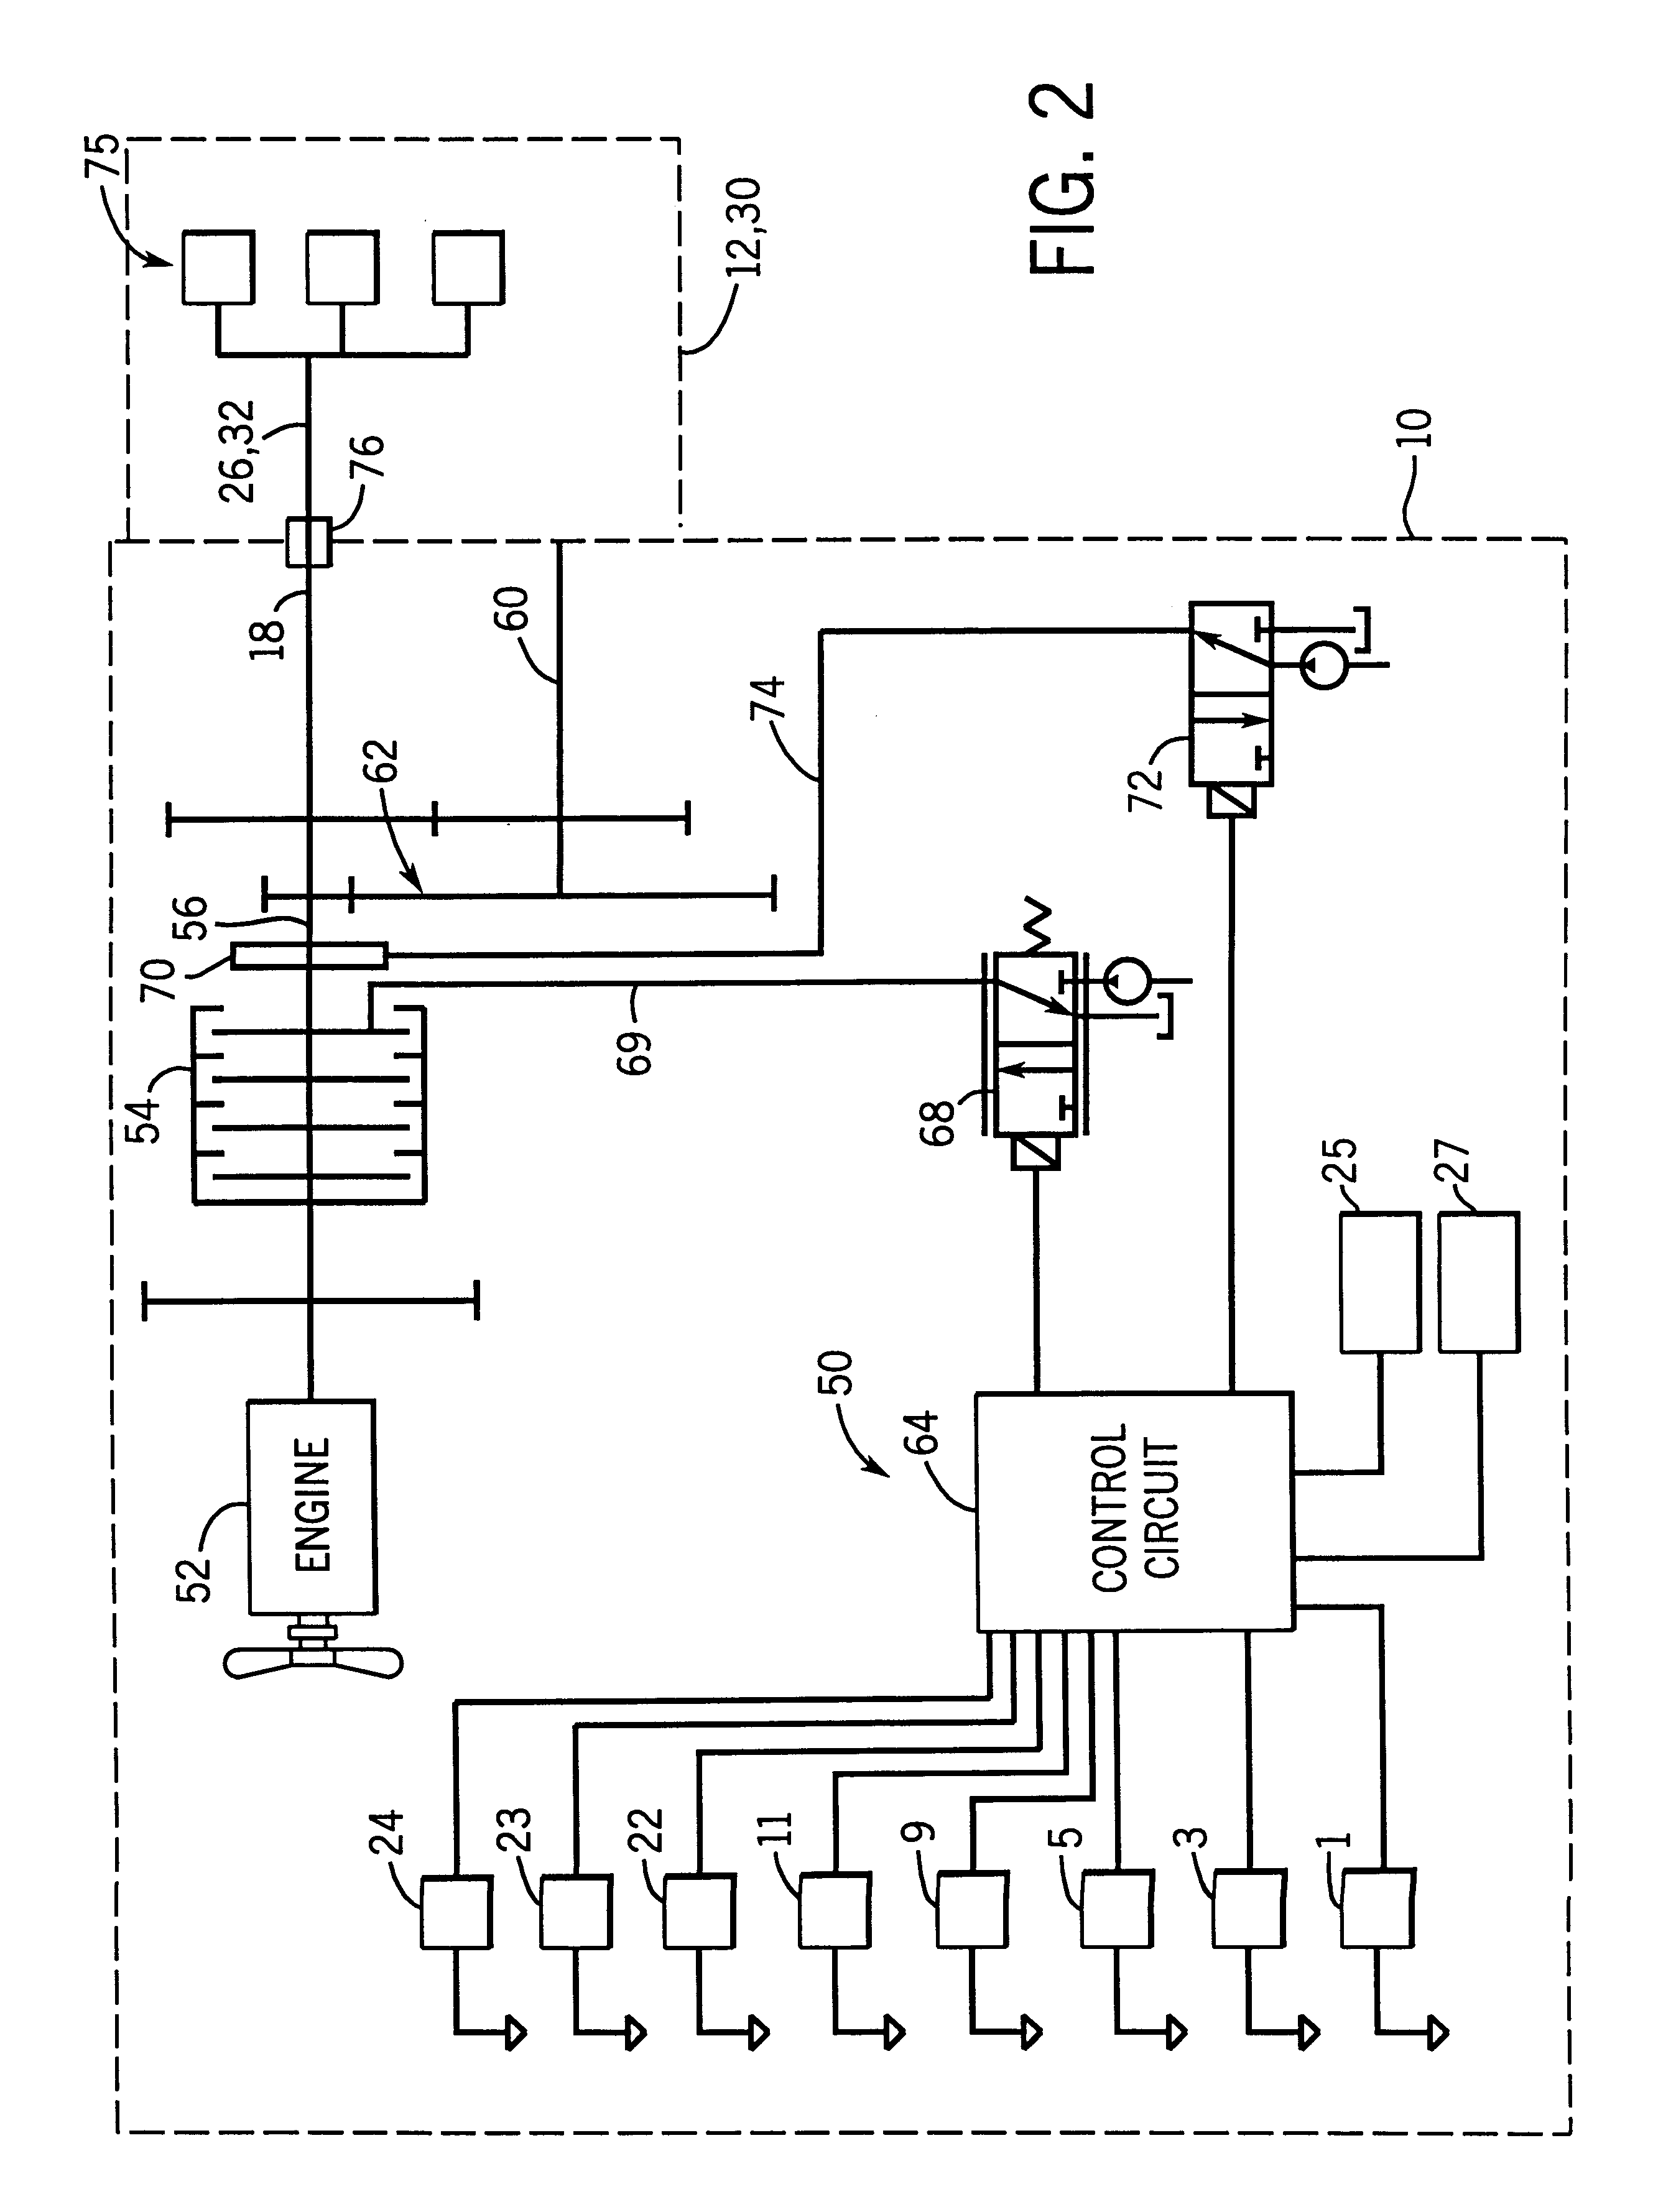 patent us6173225 power takeoff control system google patents patent drawing